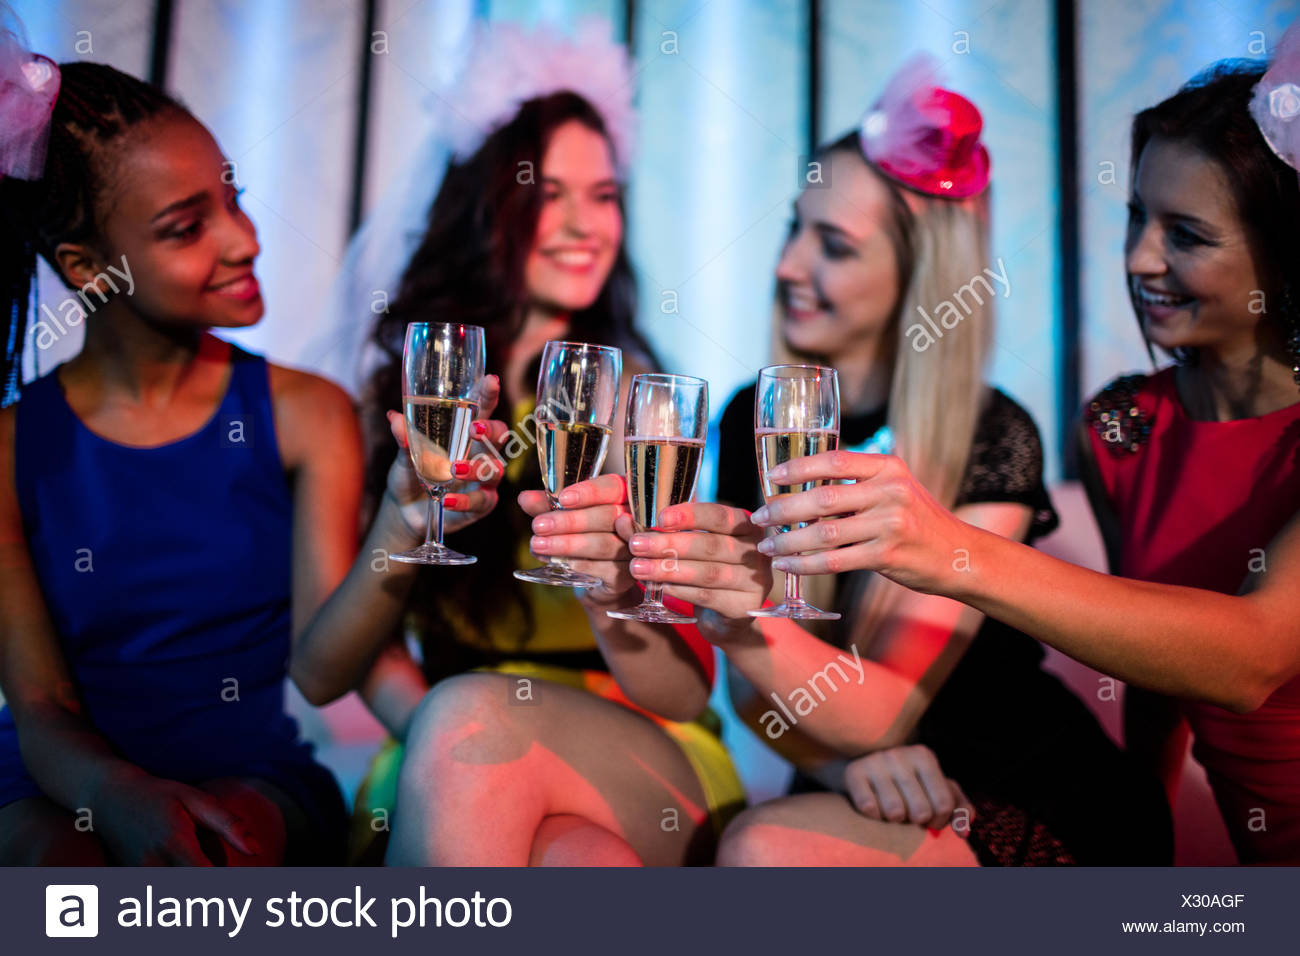 Group of smiling friend toasting glass of champagne - Stock Image